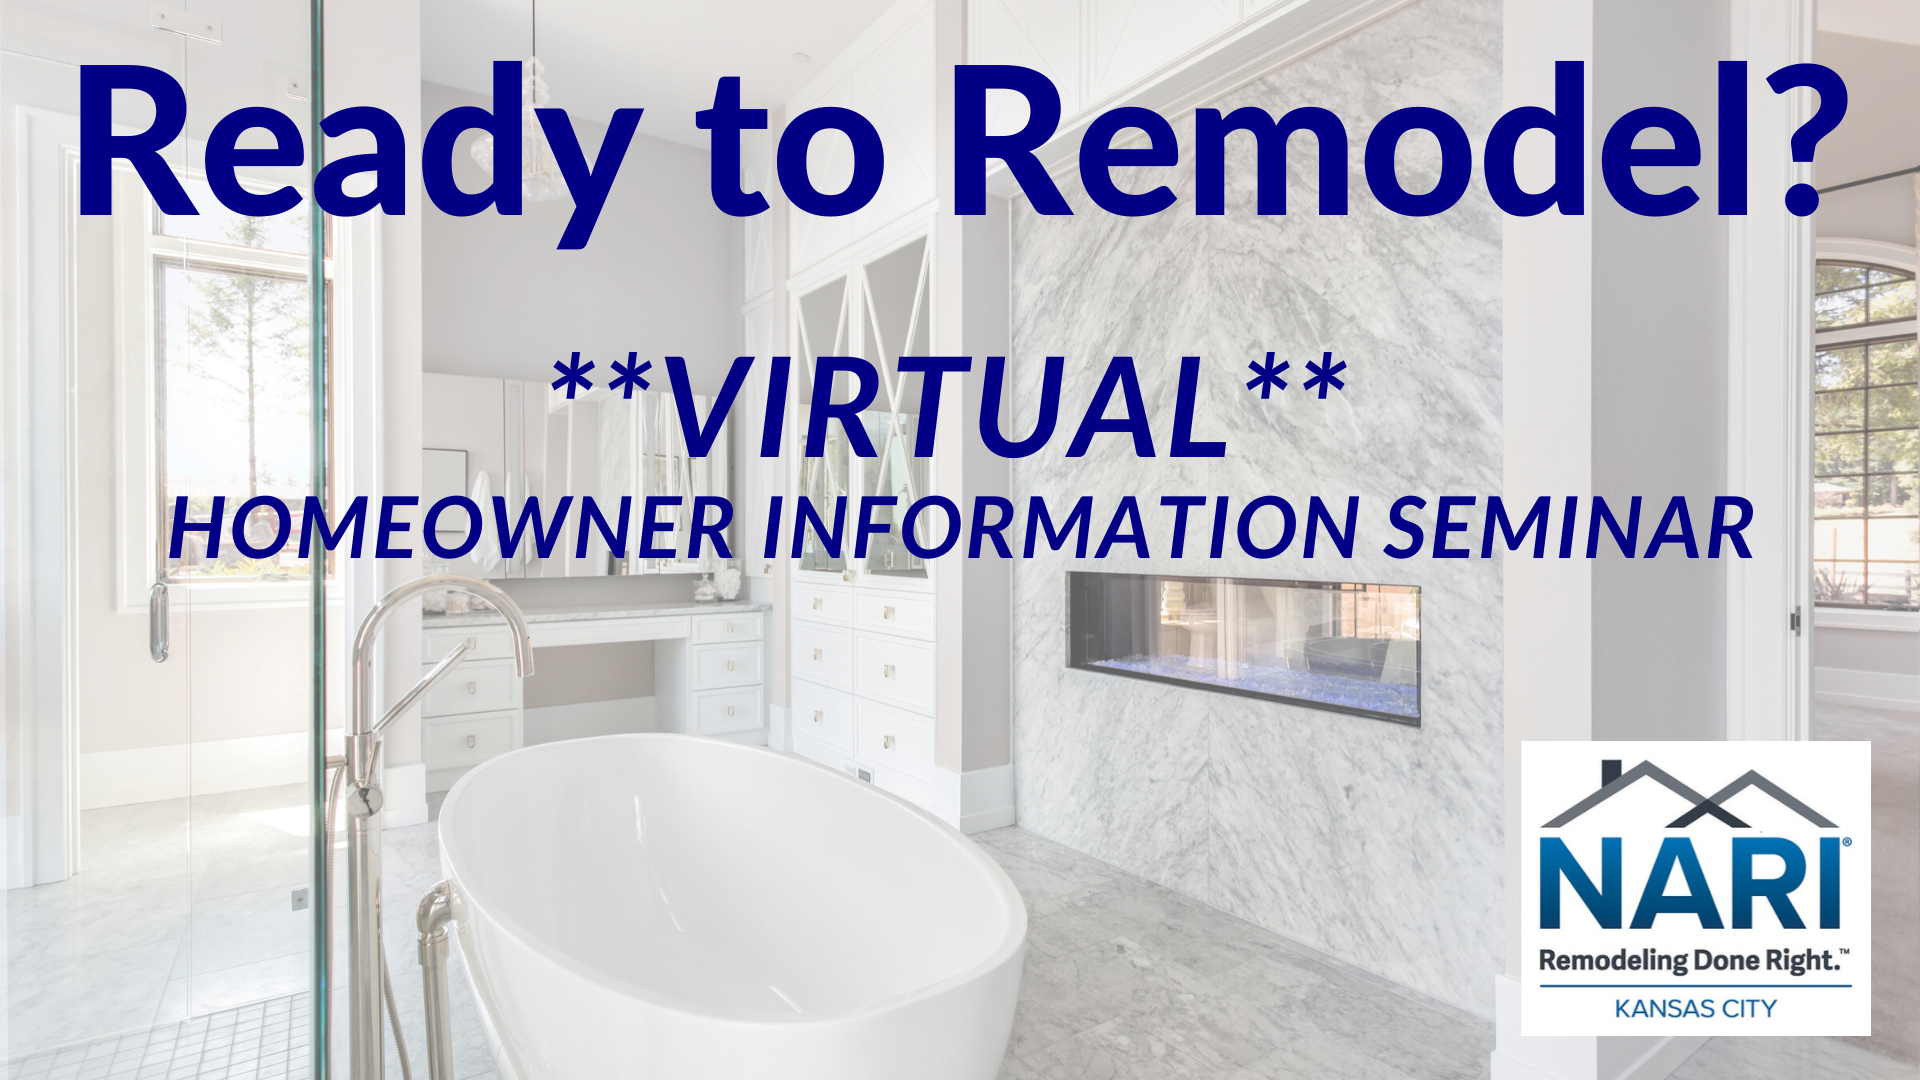 Serious About Remodeling?